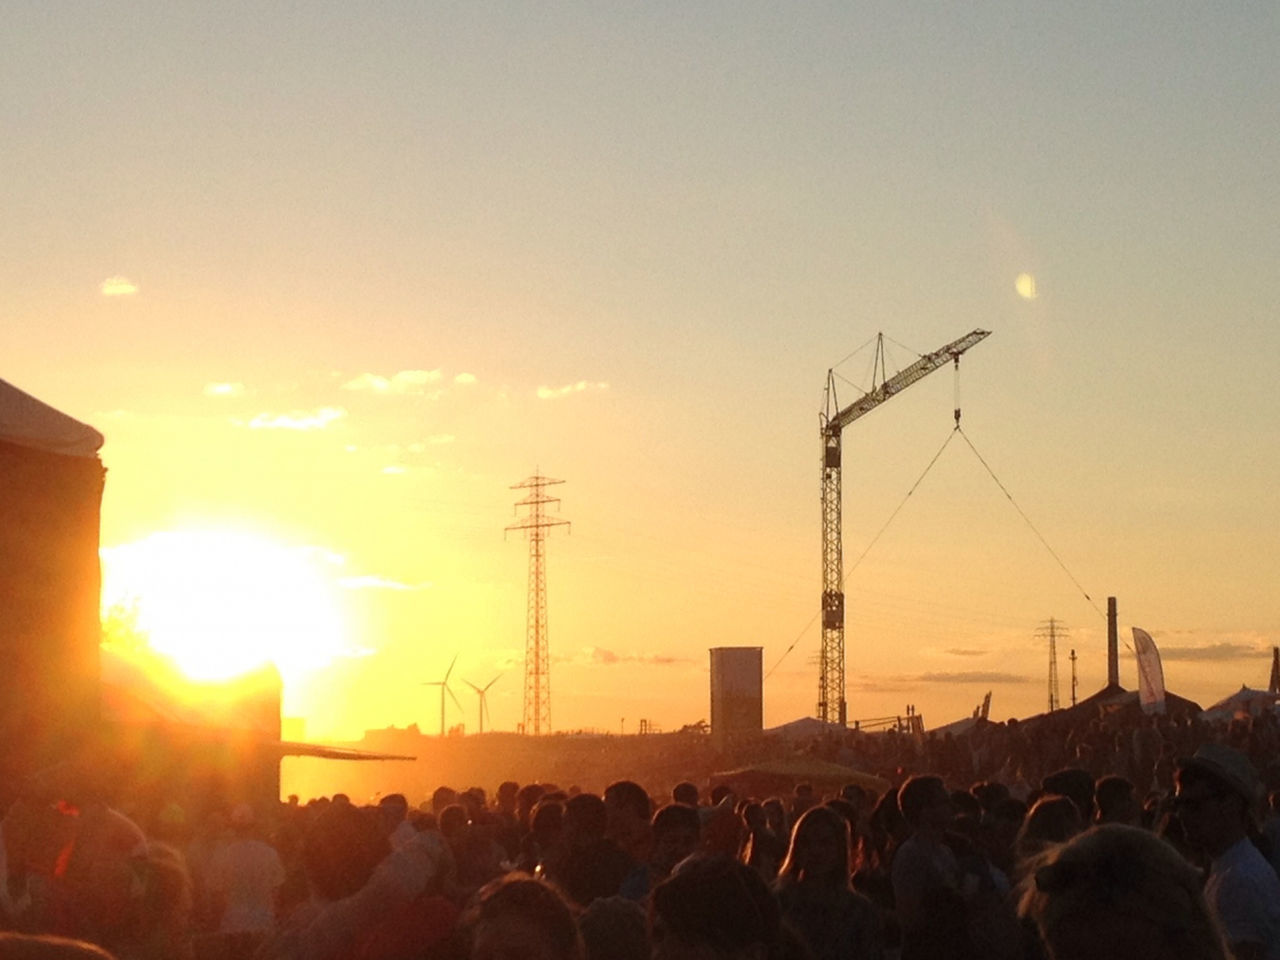 Crowd during sunset